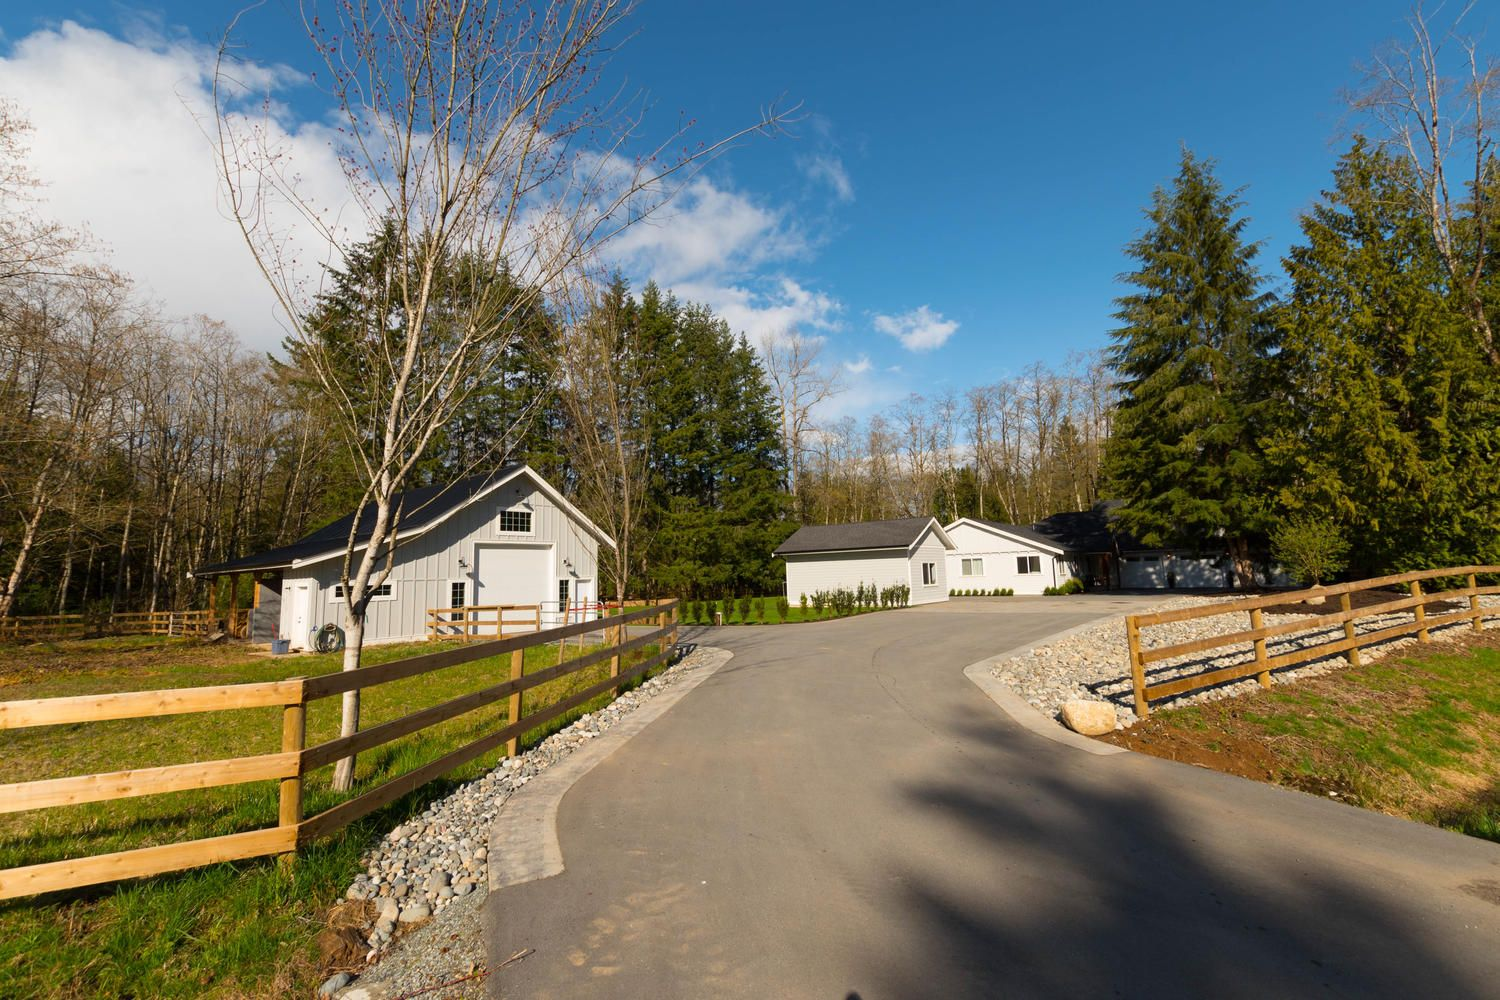 Main Photo: 24205 63 Avenue in Langley: Salmon River House for sale : MLS®# R2256479